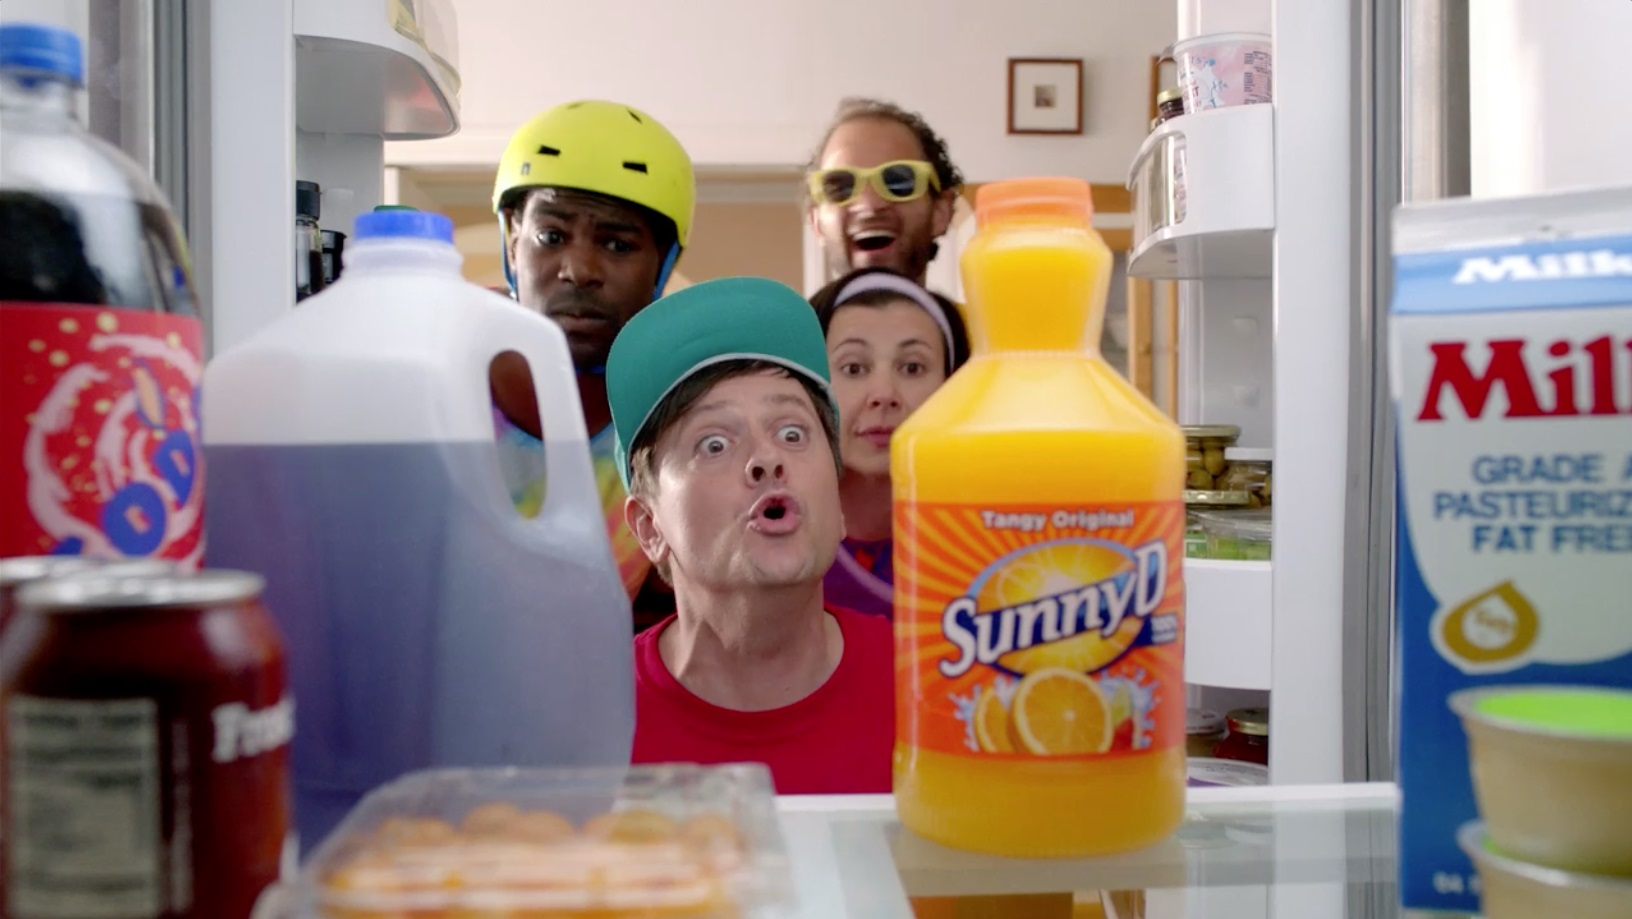 90s Rollerblade Kids Are All Grown Up in Grenadier's SunnyD Film